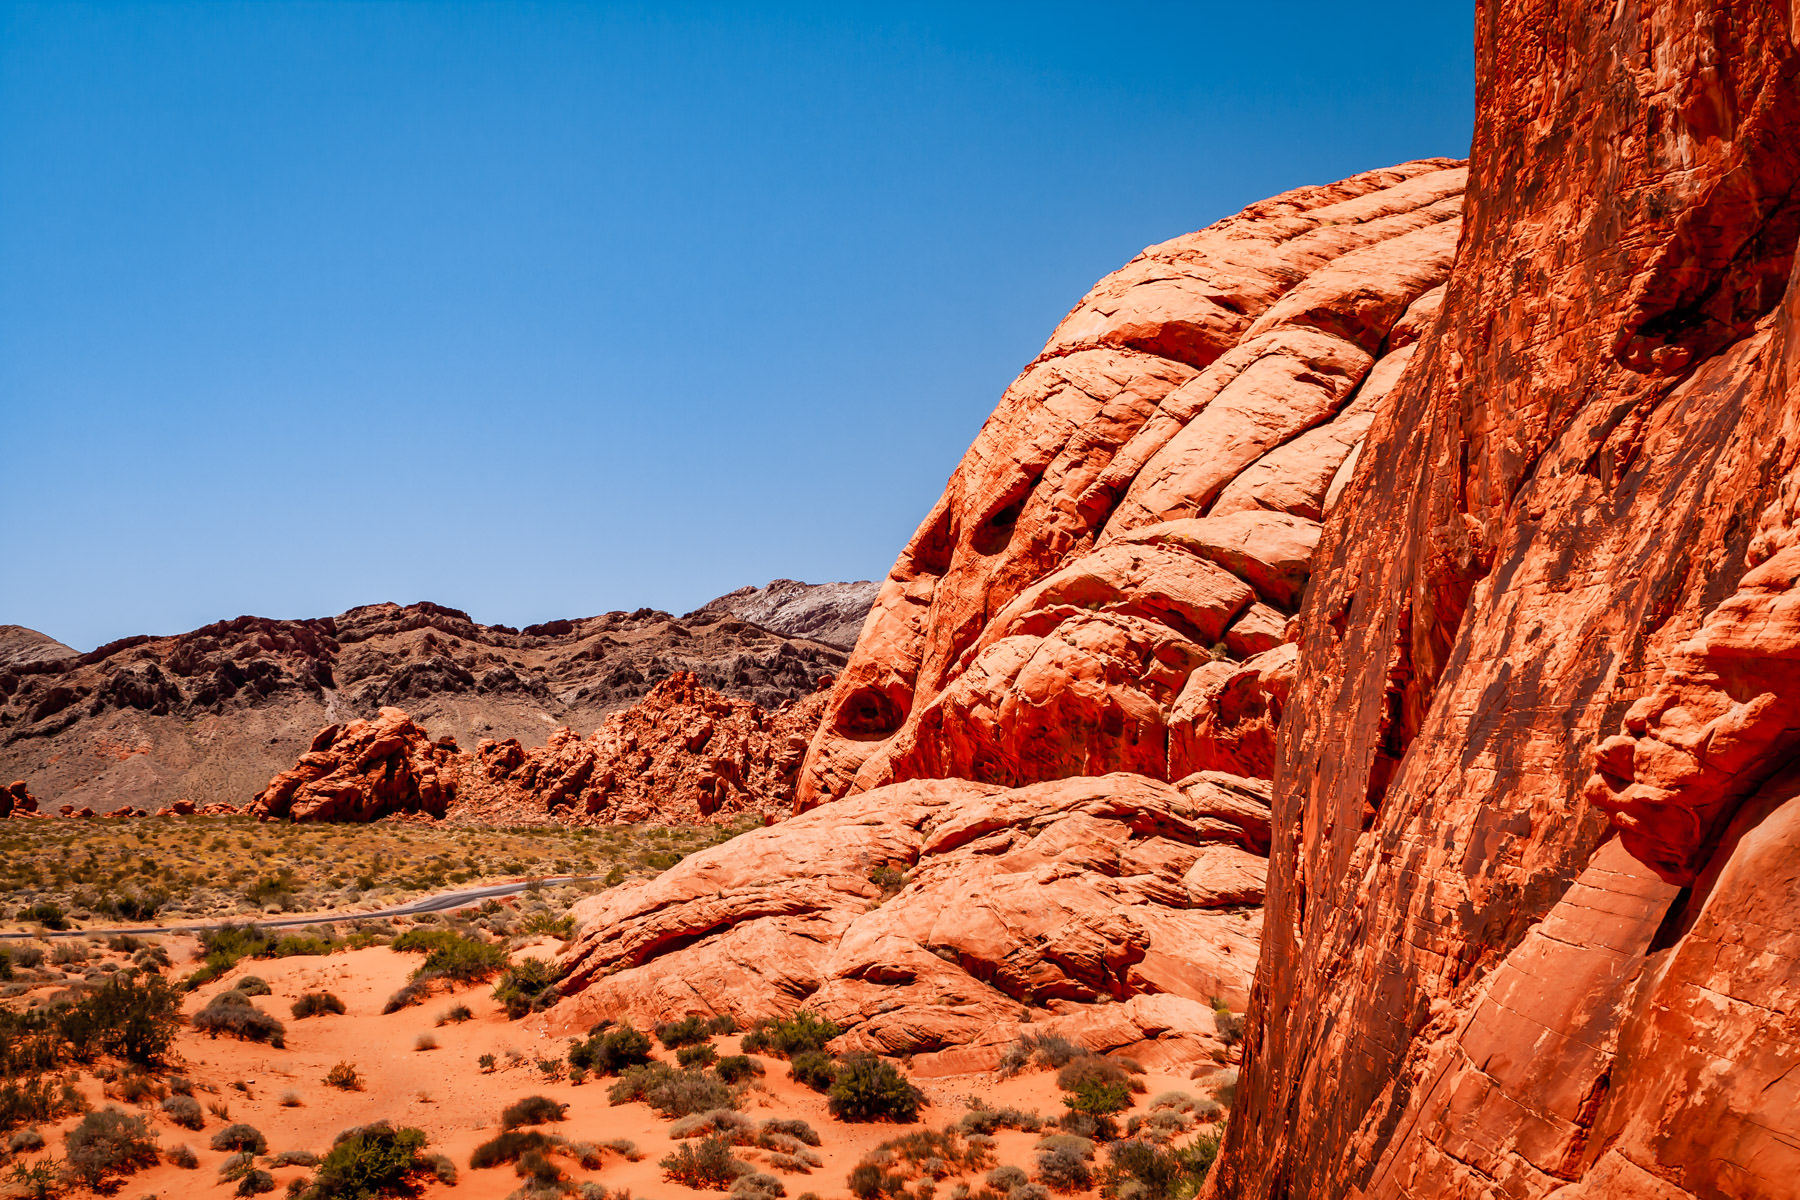 The parched landscape of Nevada's Valley of Fire State Park.